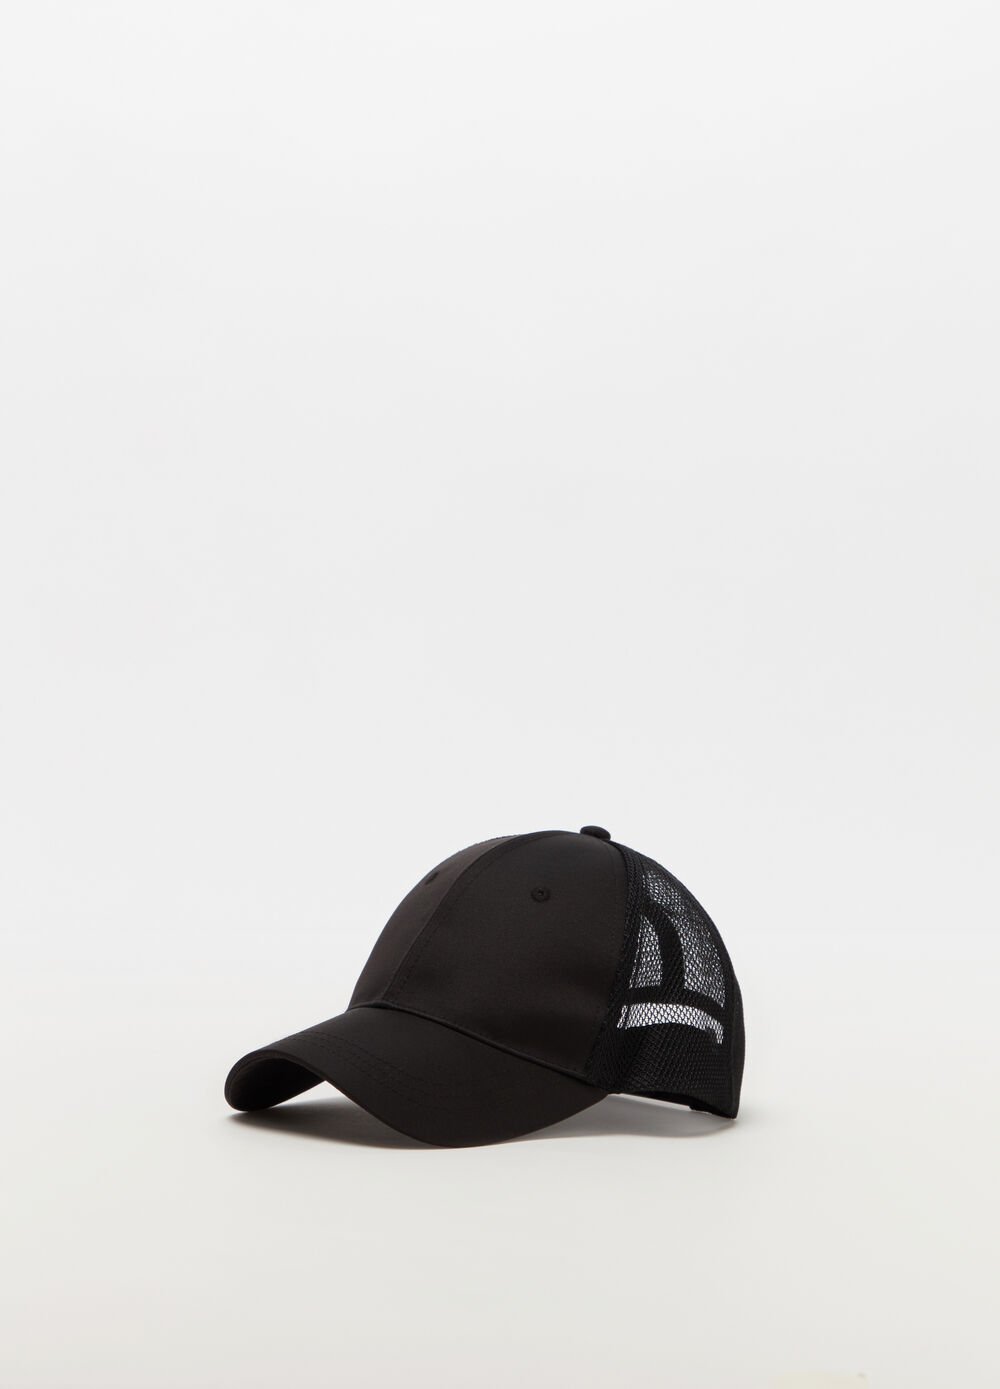 Nylon baseball cap with mesh fabric